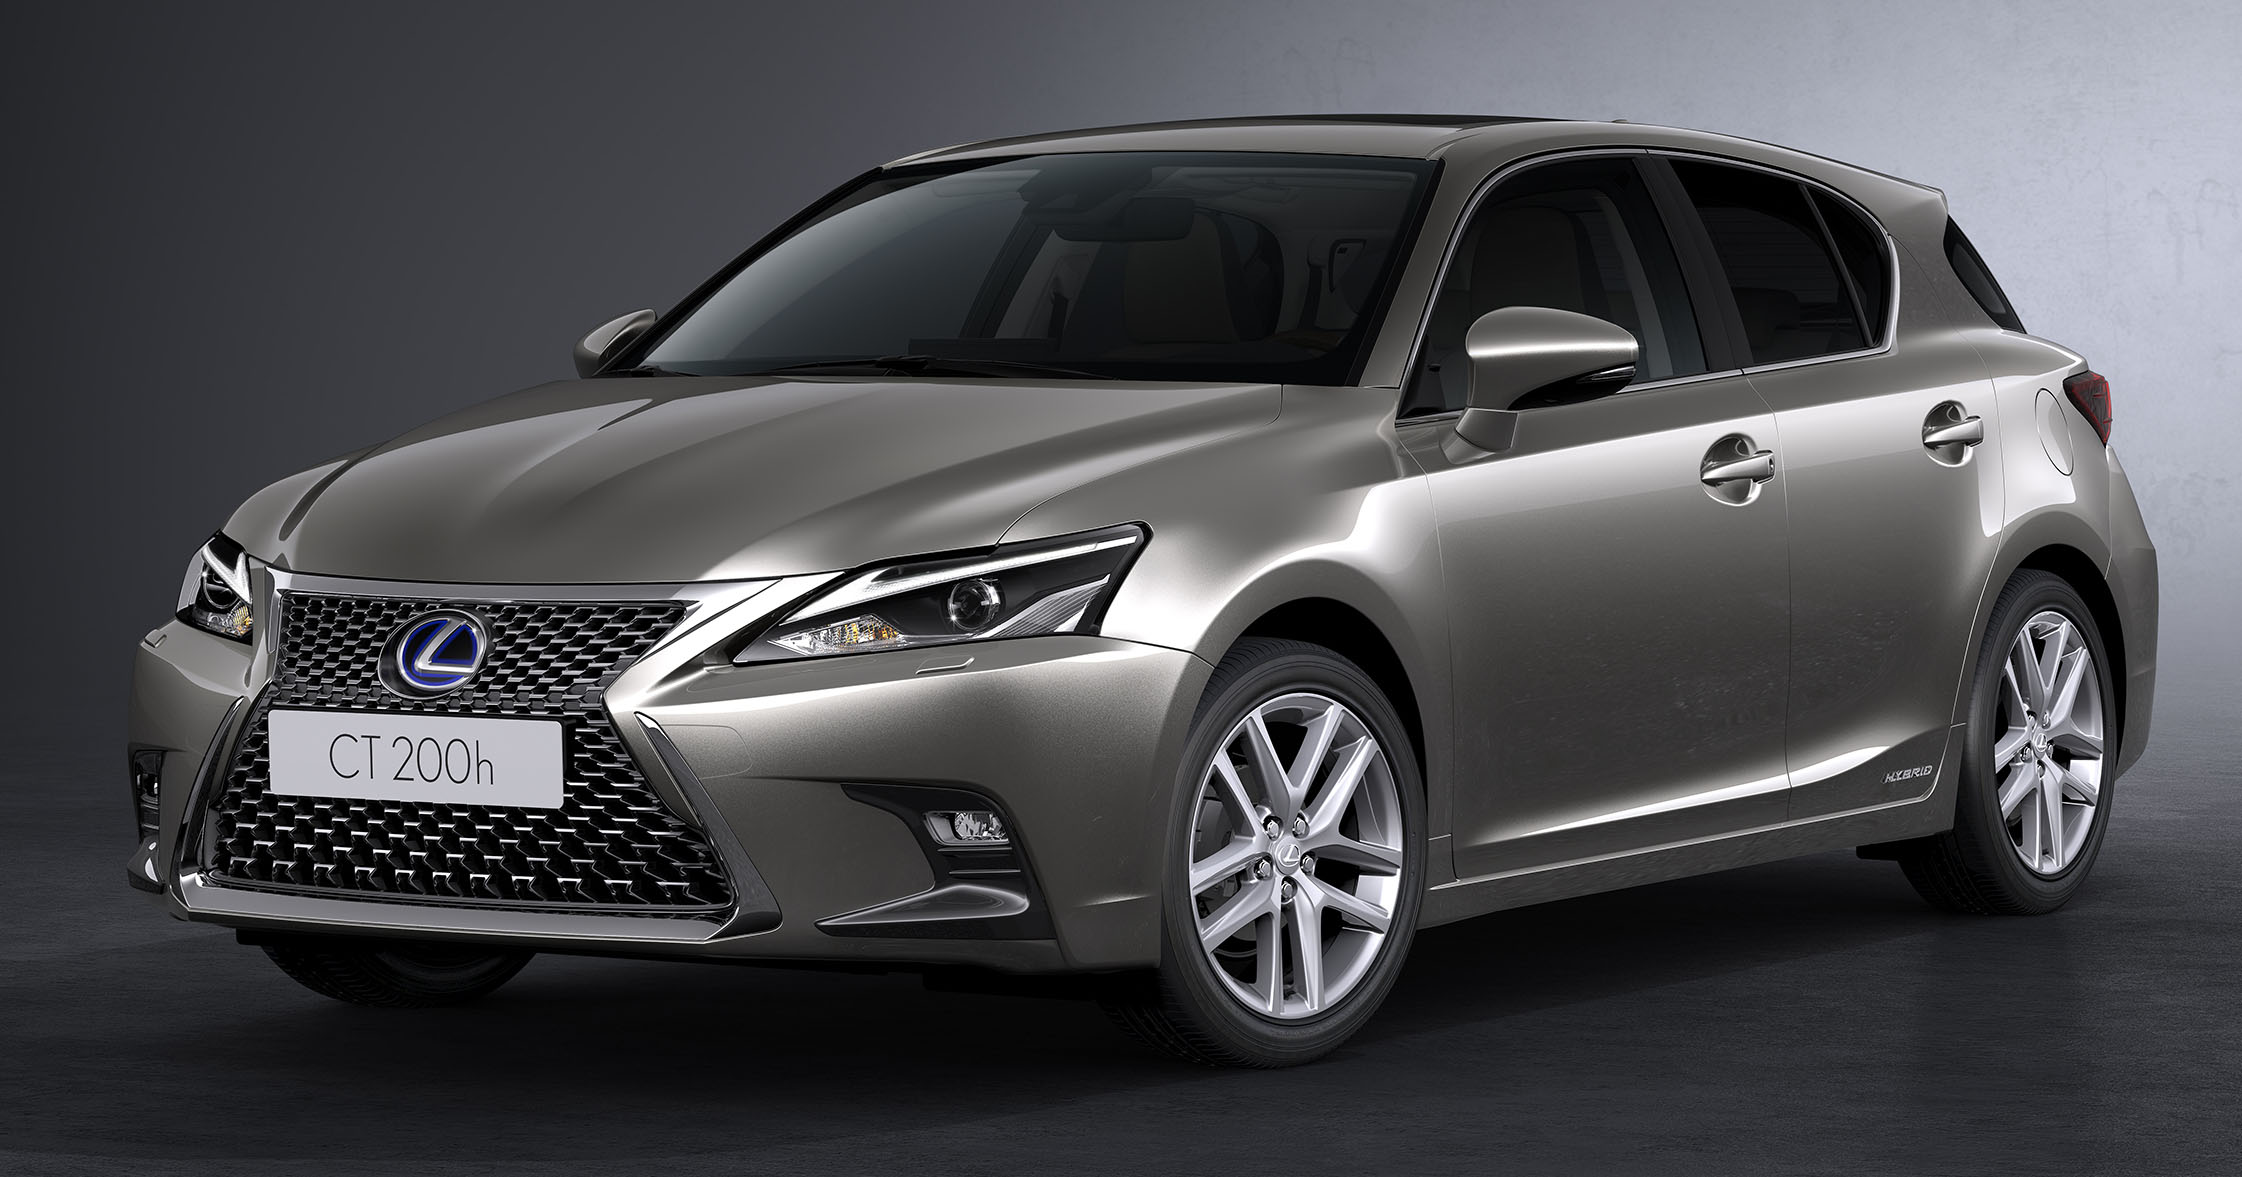 2018 Lexus CT 200h Revealed With New Styling Tech Paul